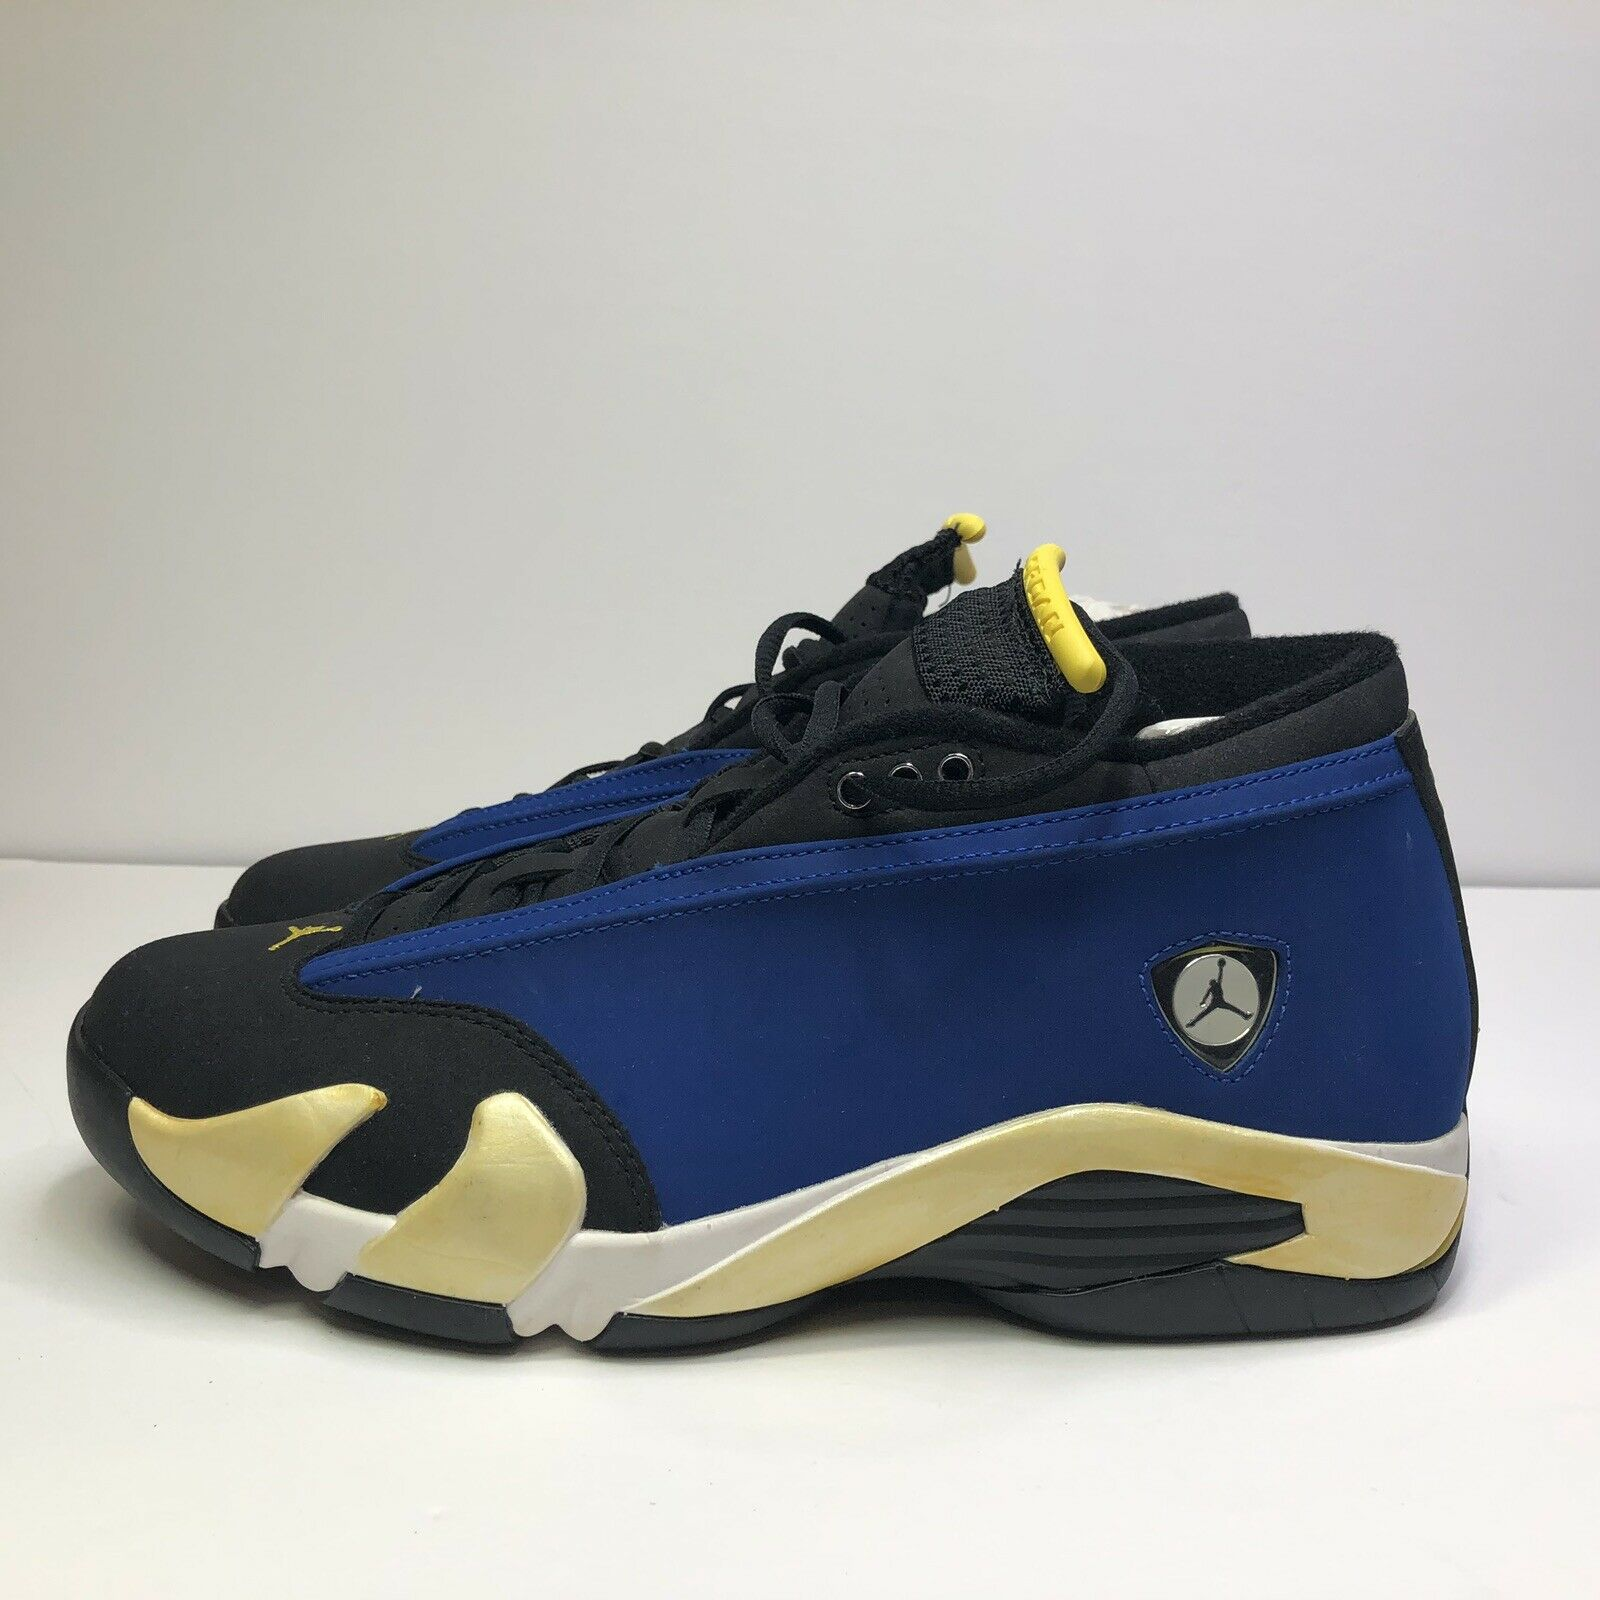 Nike Air Jordan 14 Retro Low Men's shoes Varsity Royal  Black  Size 9